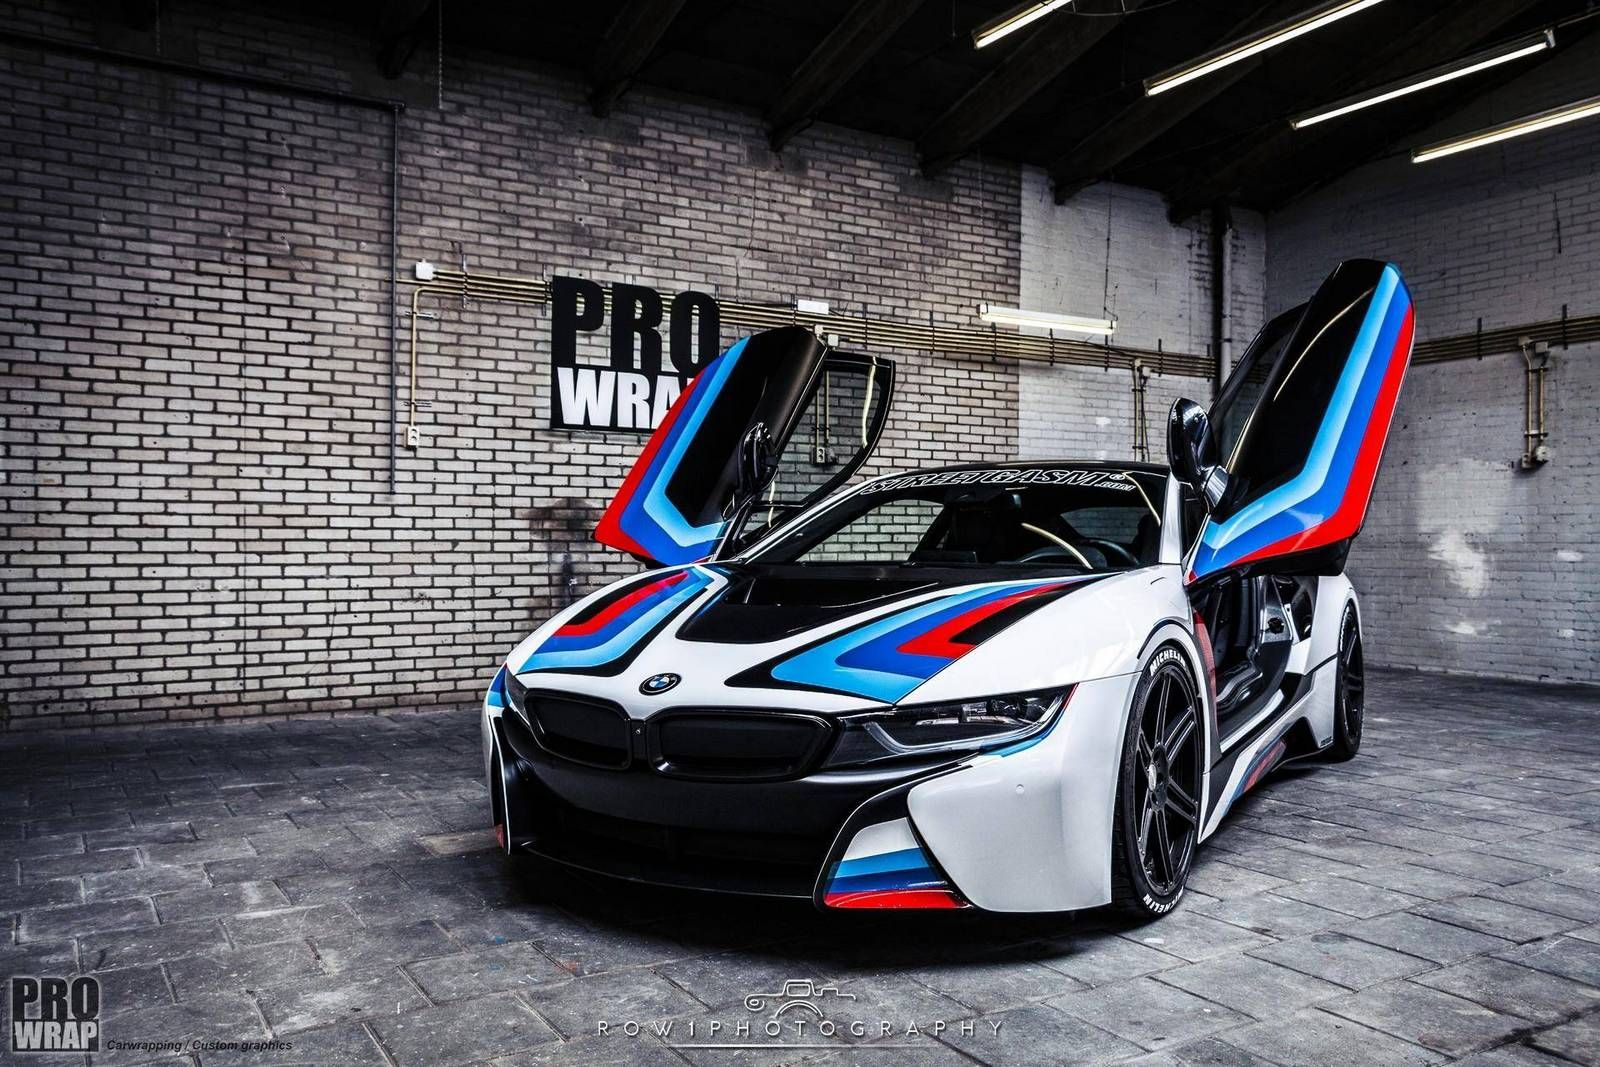 Custom Wrapped Bmw I8 By Prowrap In The Netherlands Cars